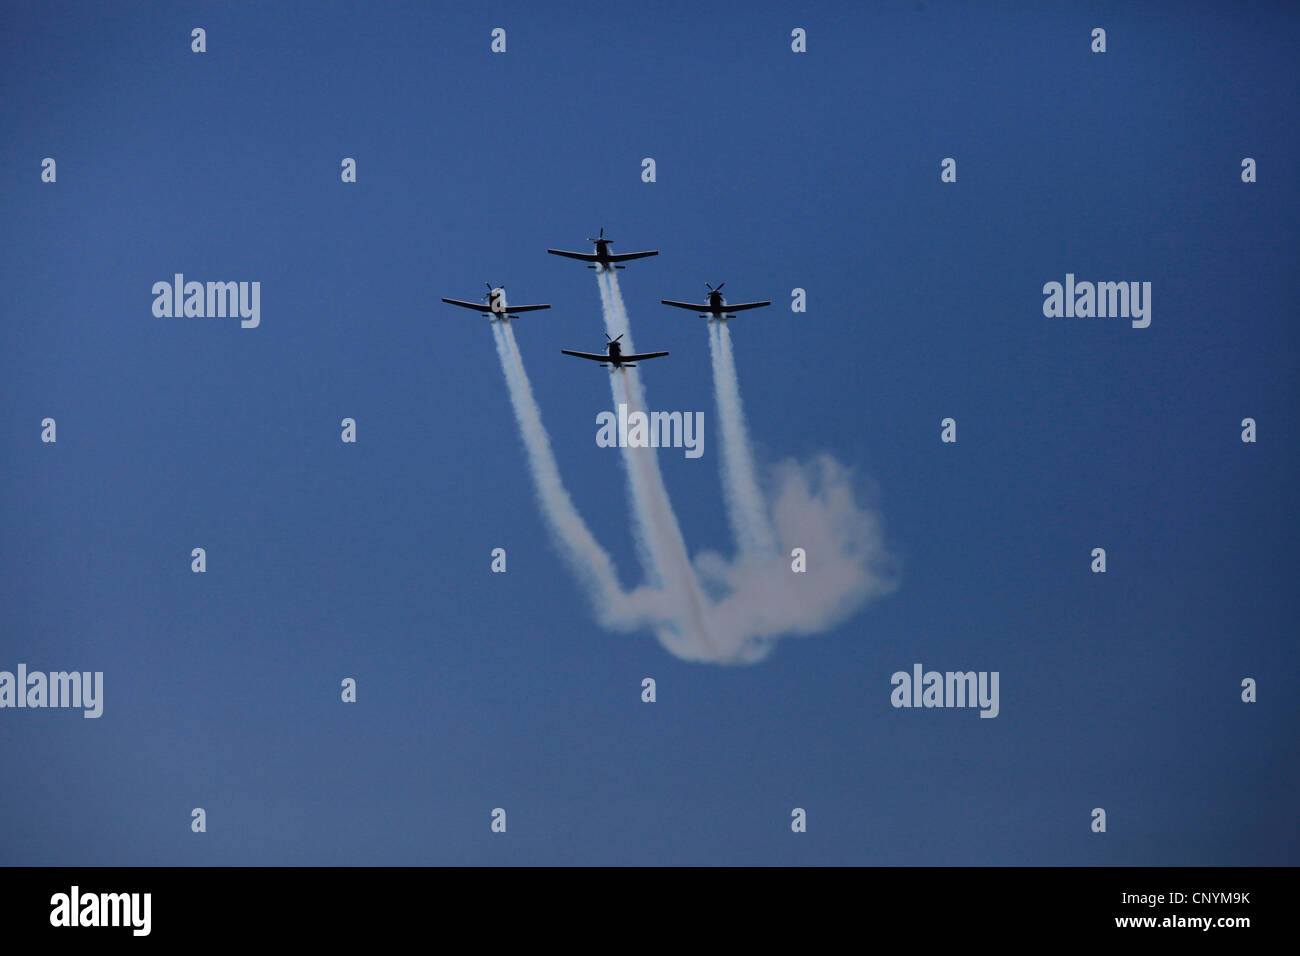 Beechcraft T-6A Texan II single-engine turboprop air crafts of the Israeli Air Force aerobatic team flying in formation - Stock Image